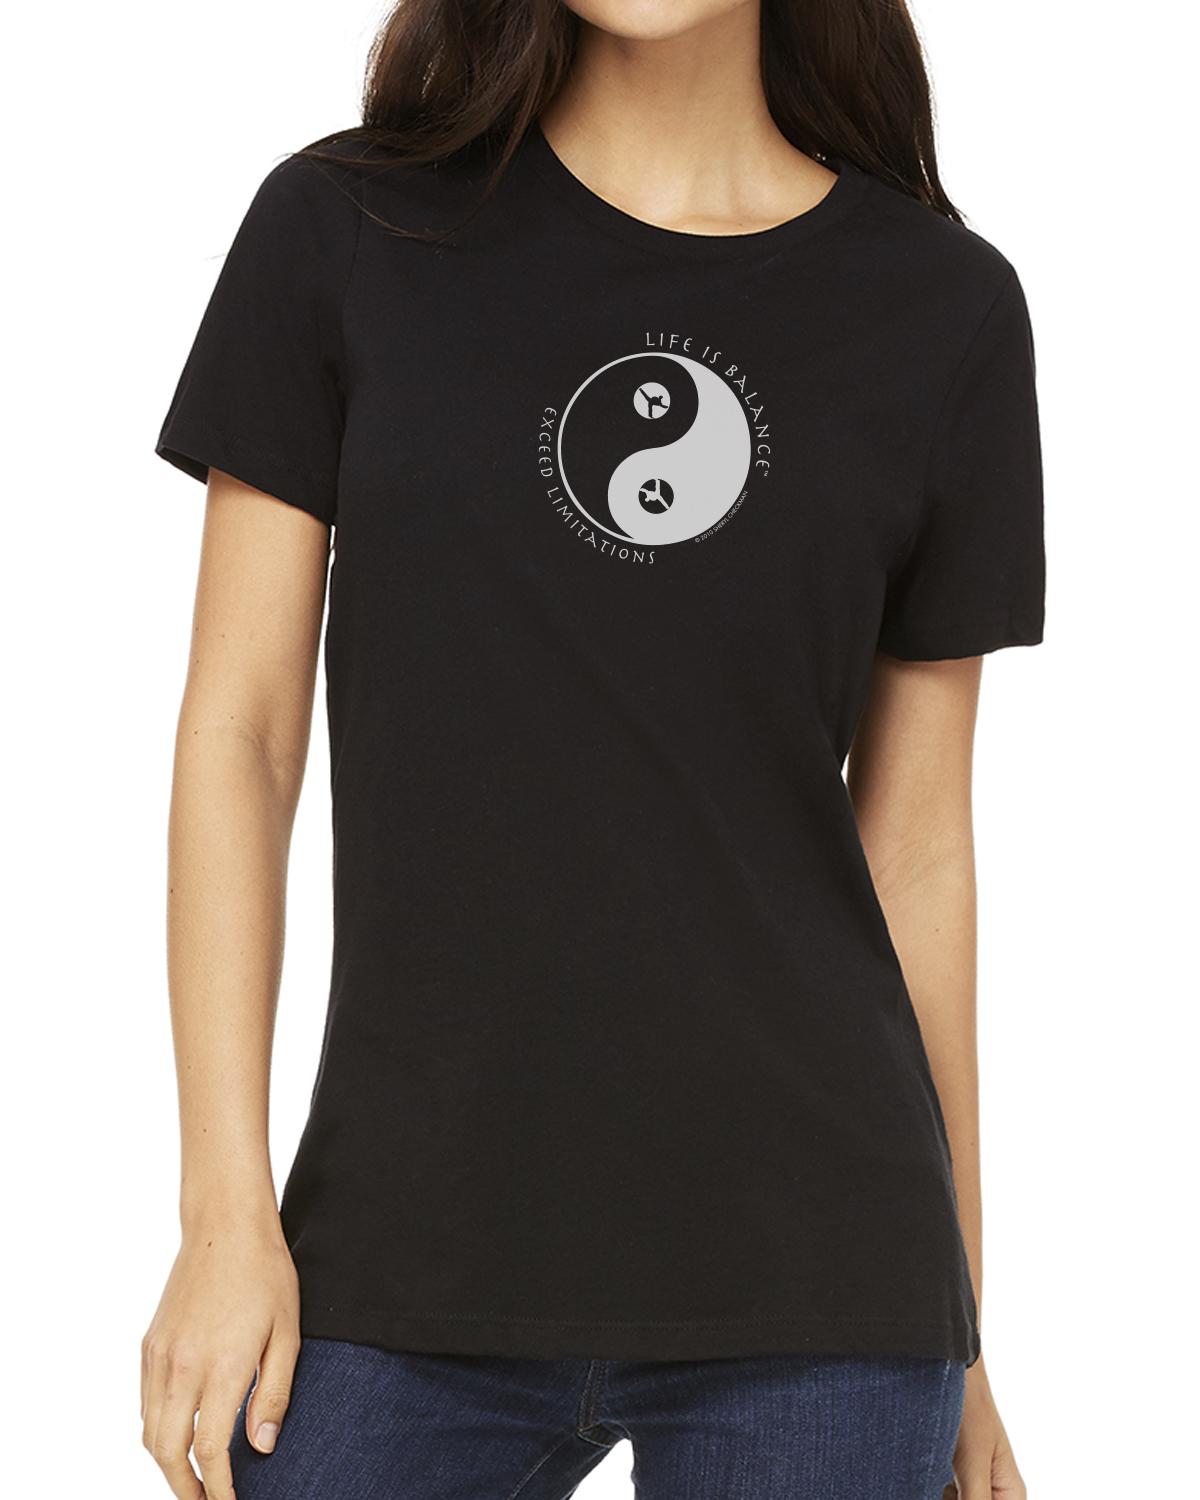 Women's short sleeve martial arts t-shirt (black)